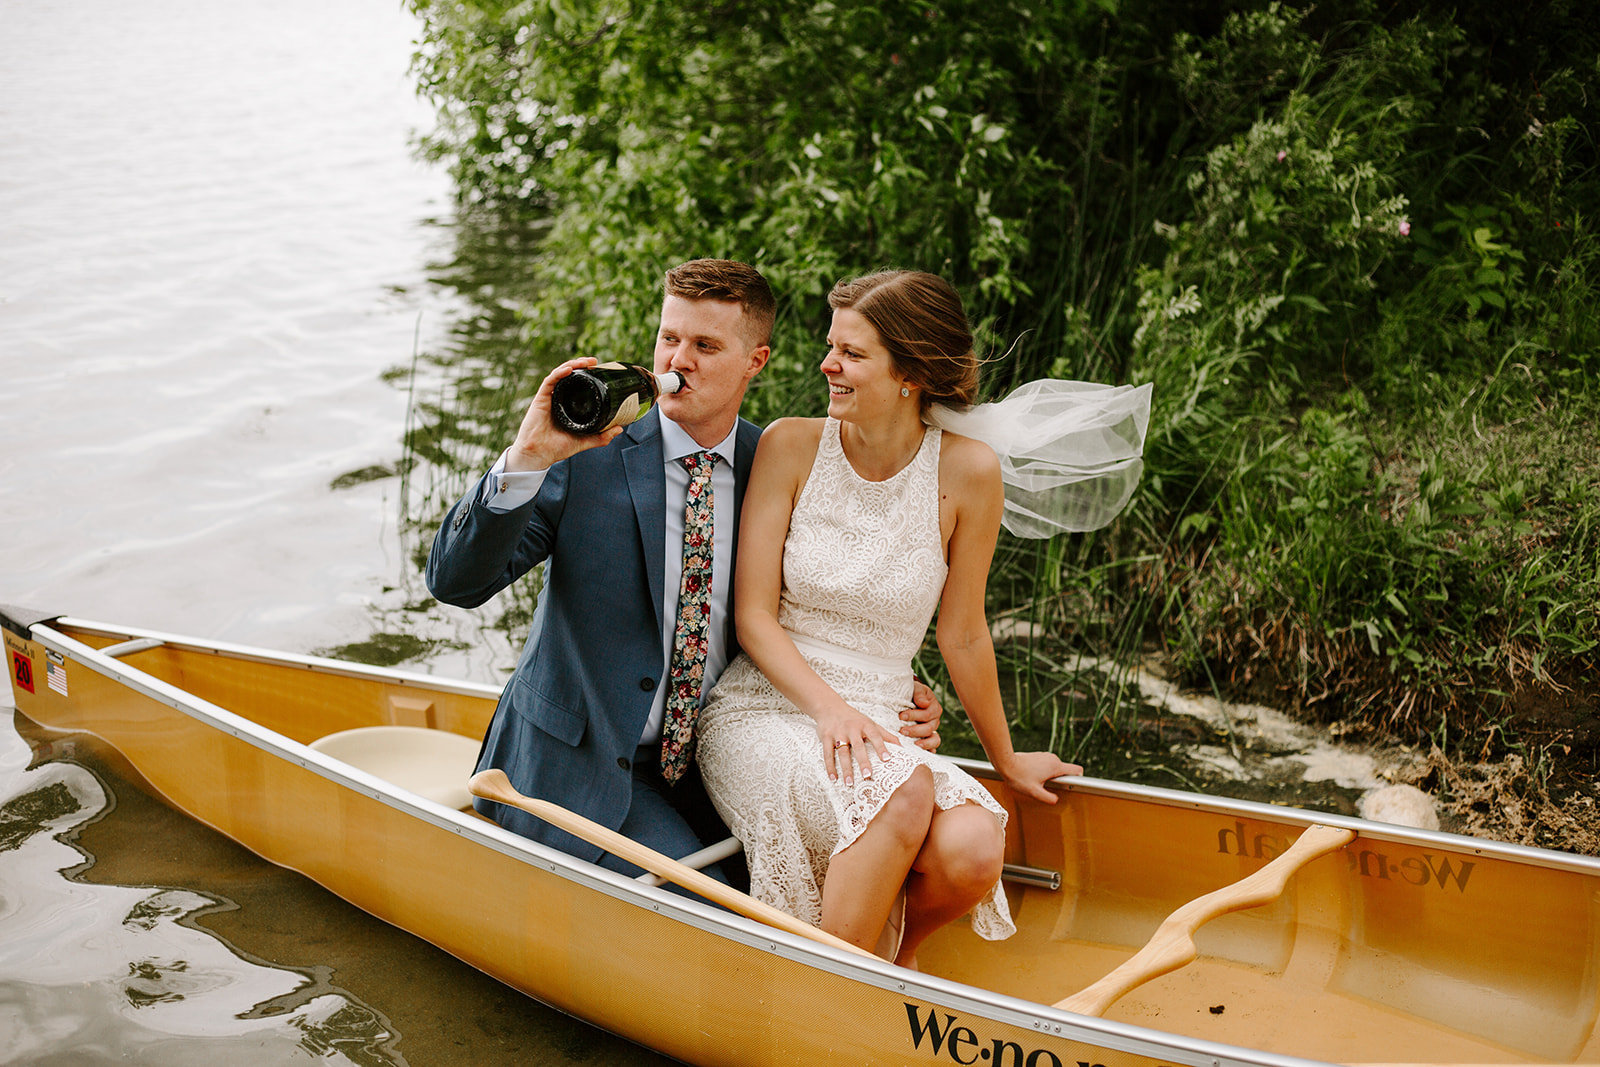 A couple drinking champagne in a canoe during their wedding elopement